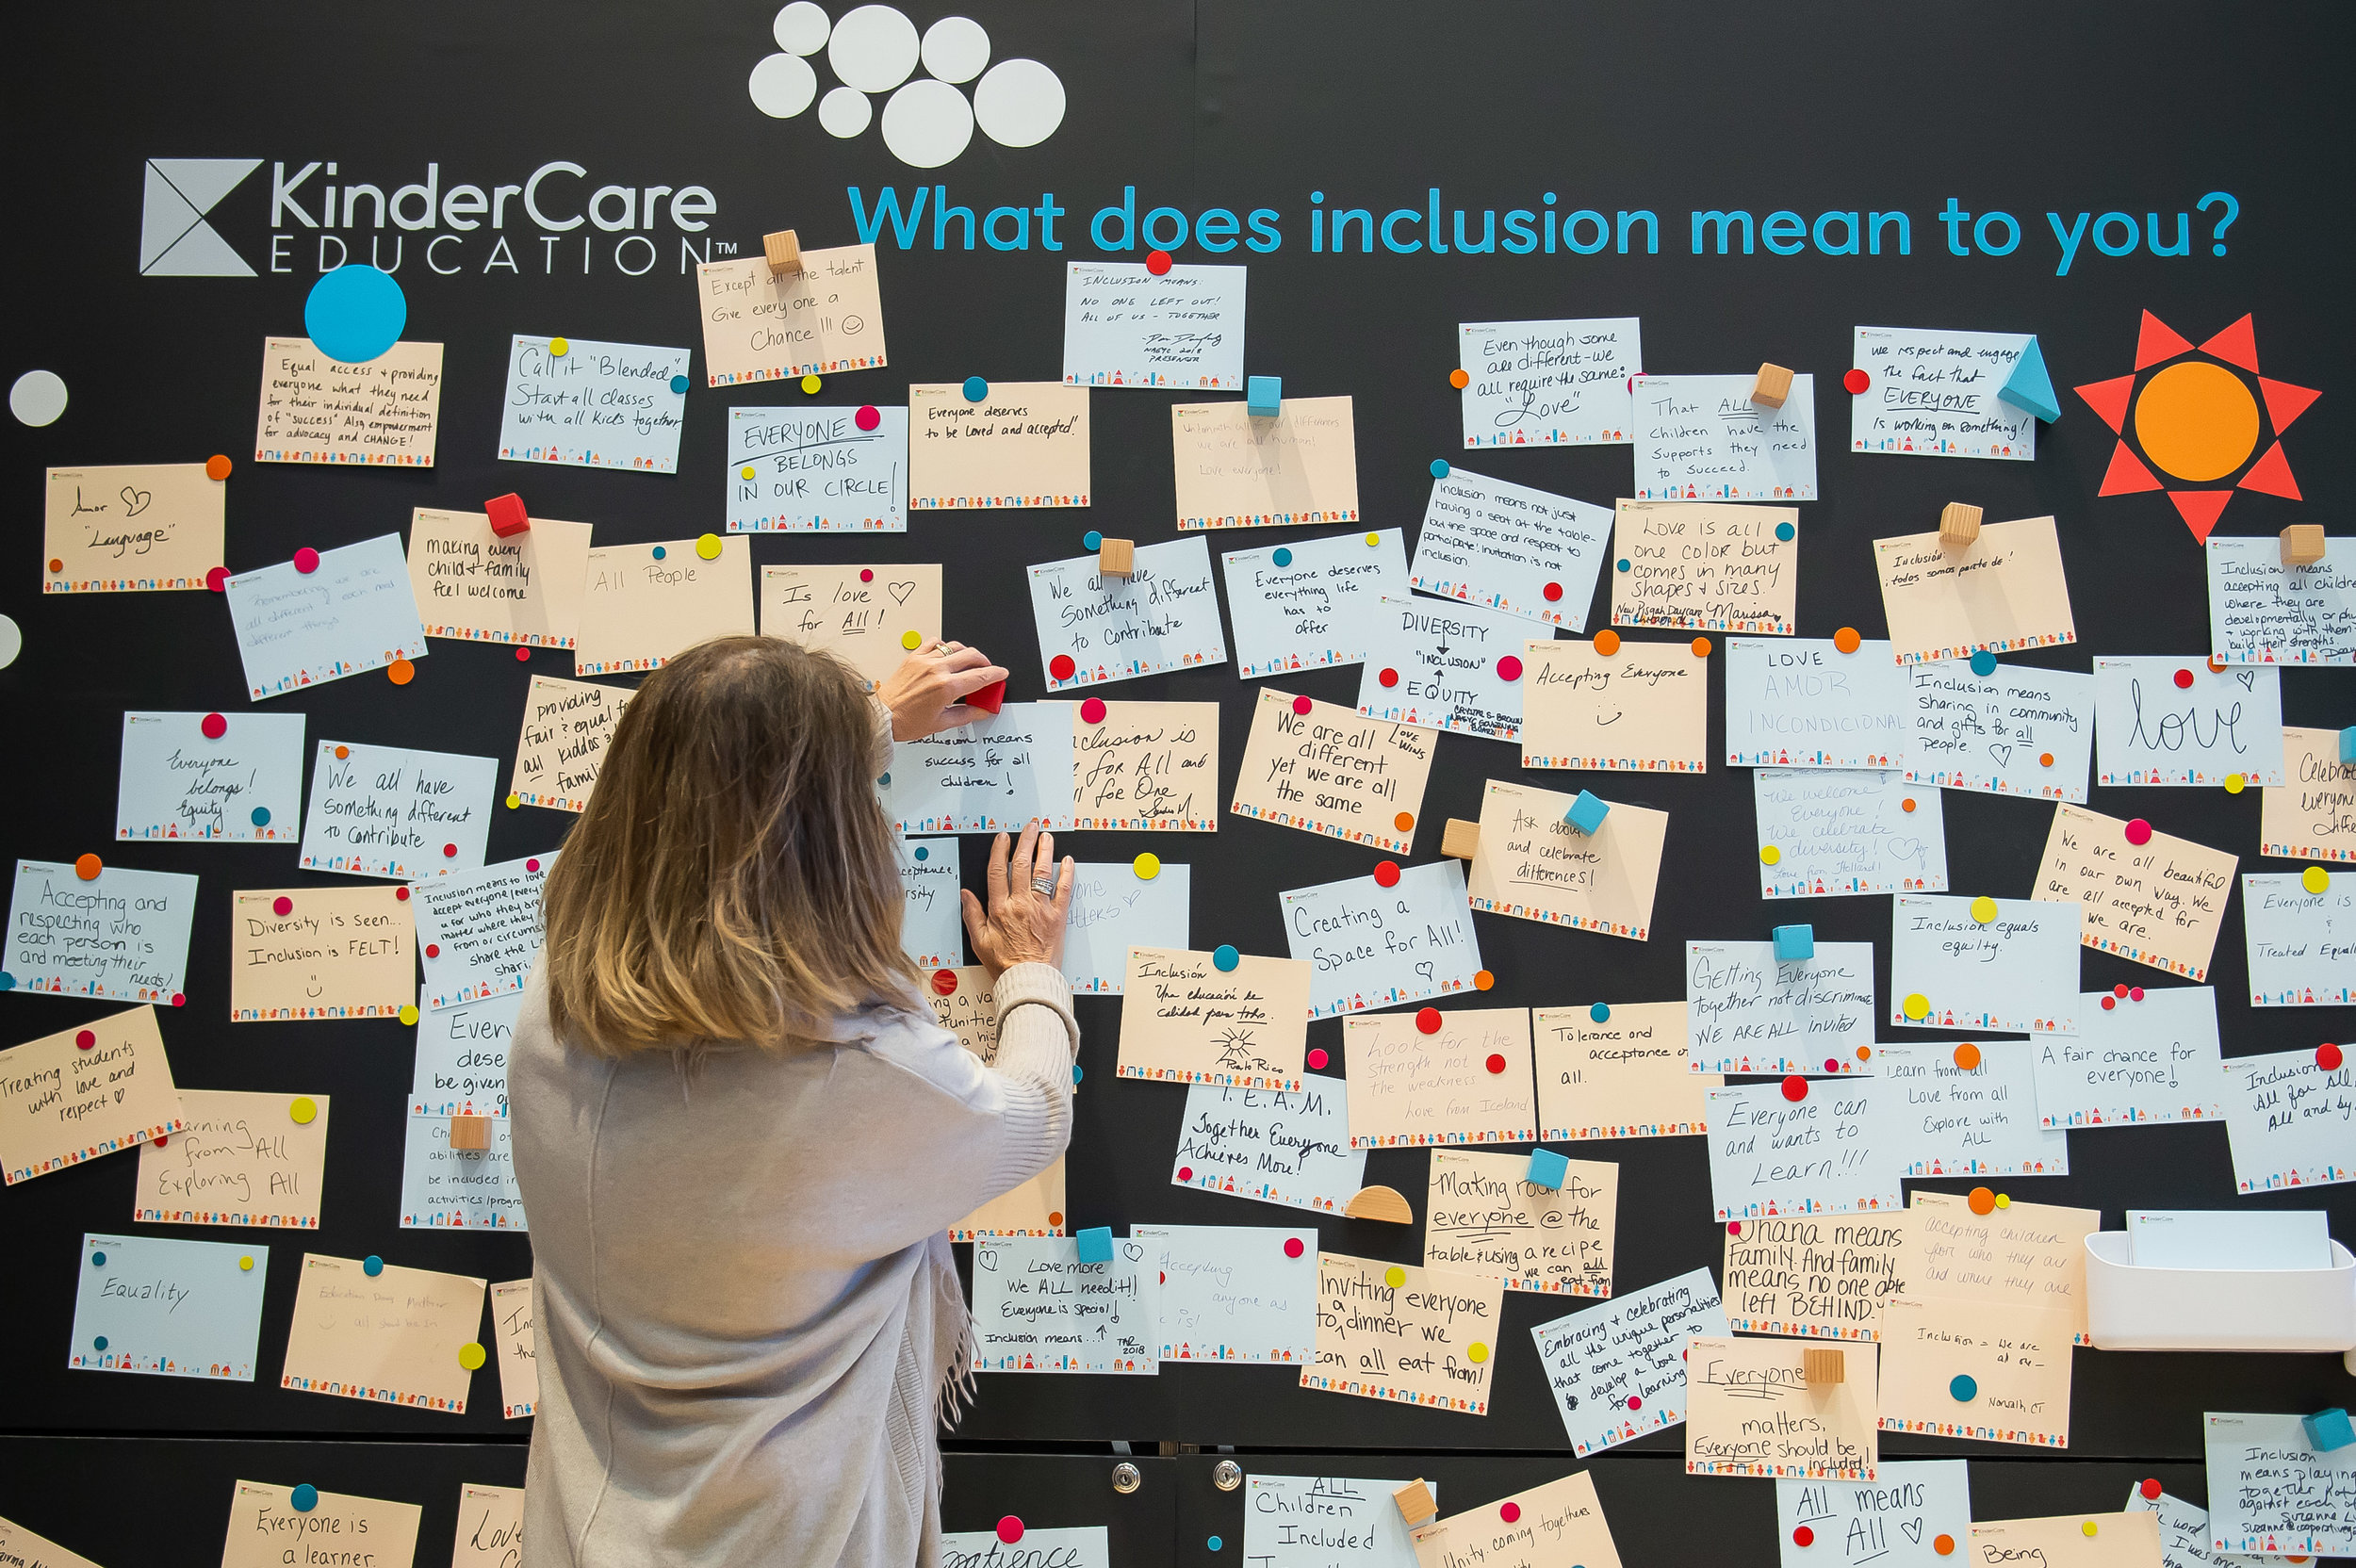 KinderCare_DC-Inclusion wall .jpg